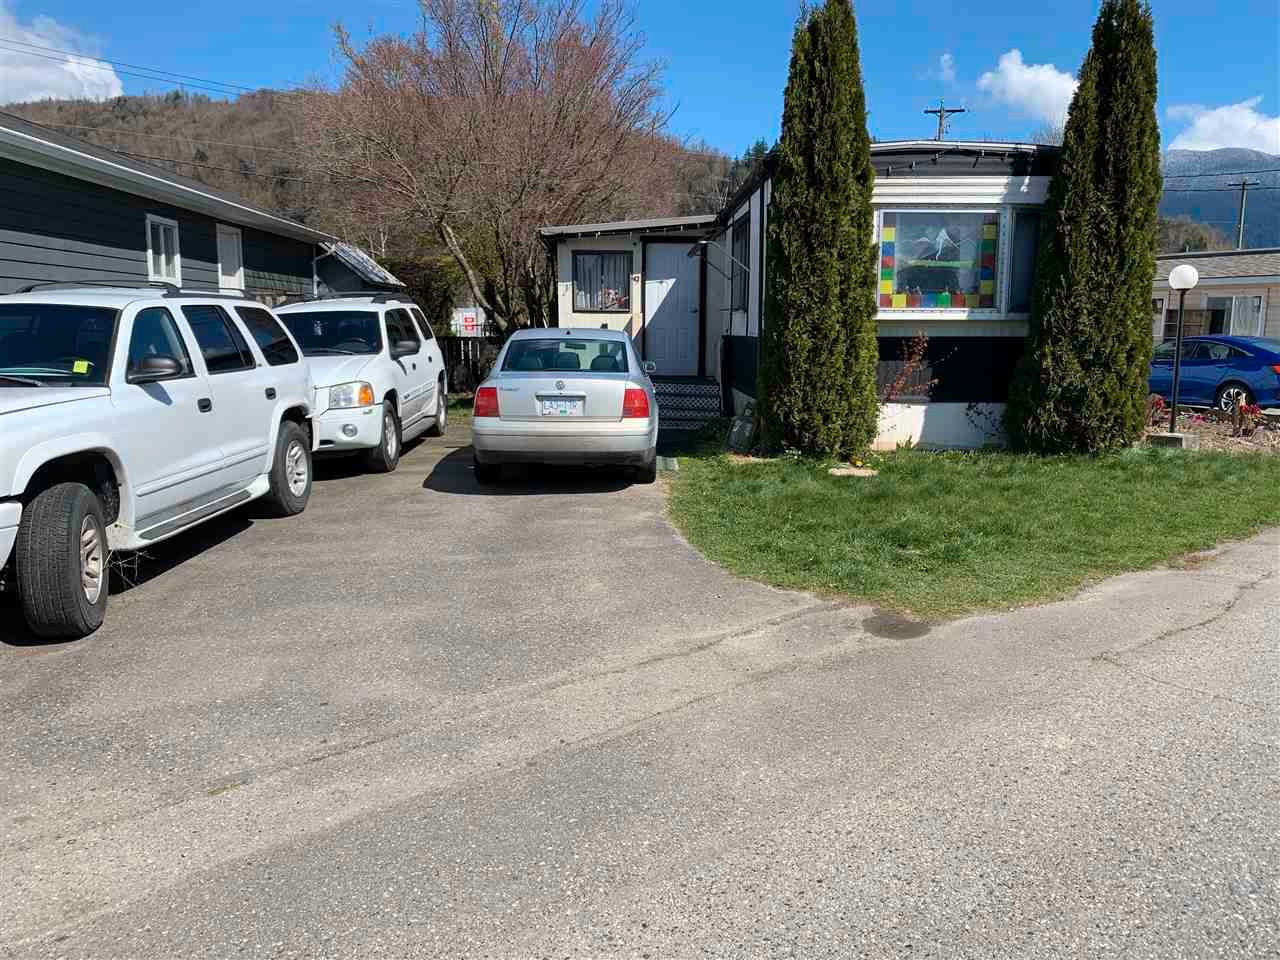 Photo 8: Photos: 9 1884 HEATH ROAD: Agassiz Manufactured Home for sale : MLS®# R2565250